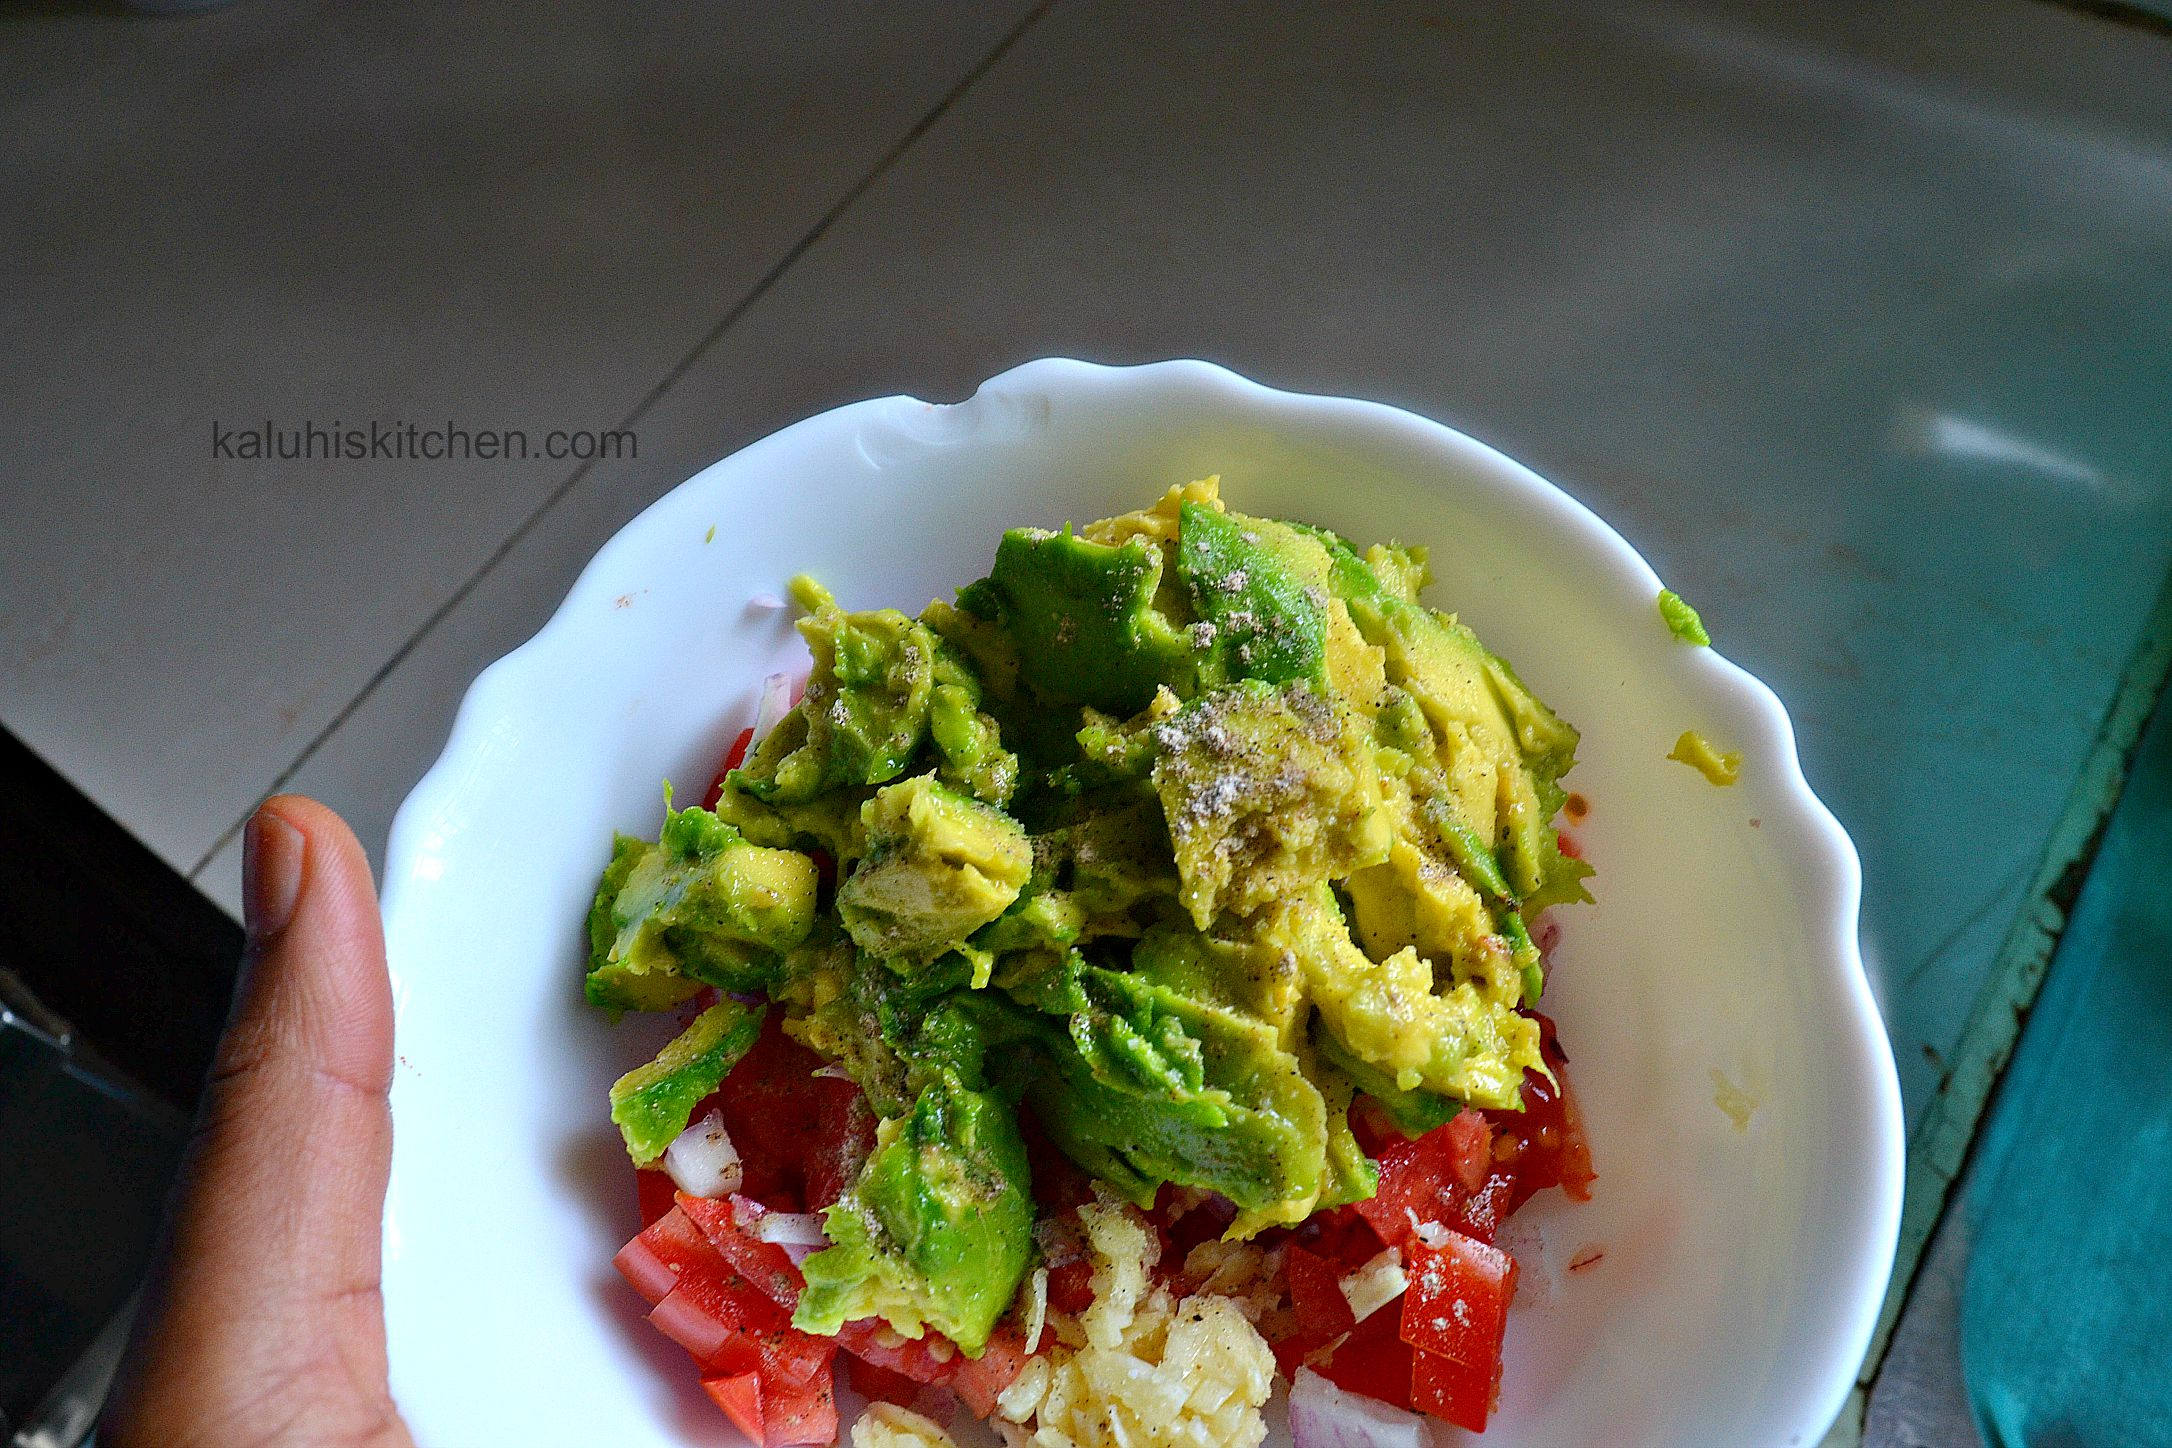 salt is a necessary ingredient to the guacamole as it brings out the flavor of the avocado, brings out the juices of the tomato_kaluhiskitchen.com